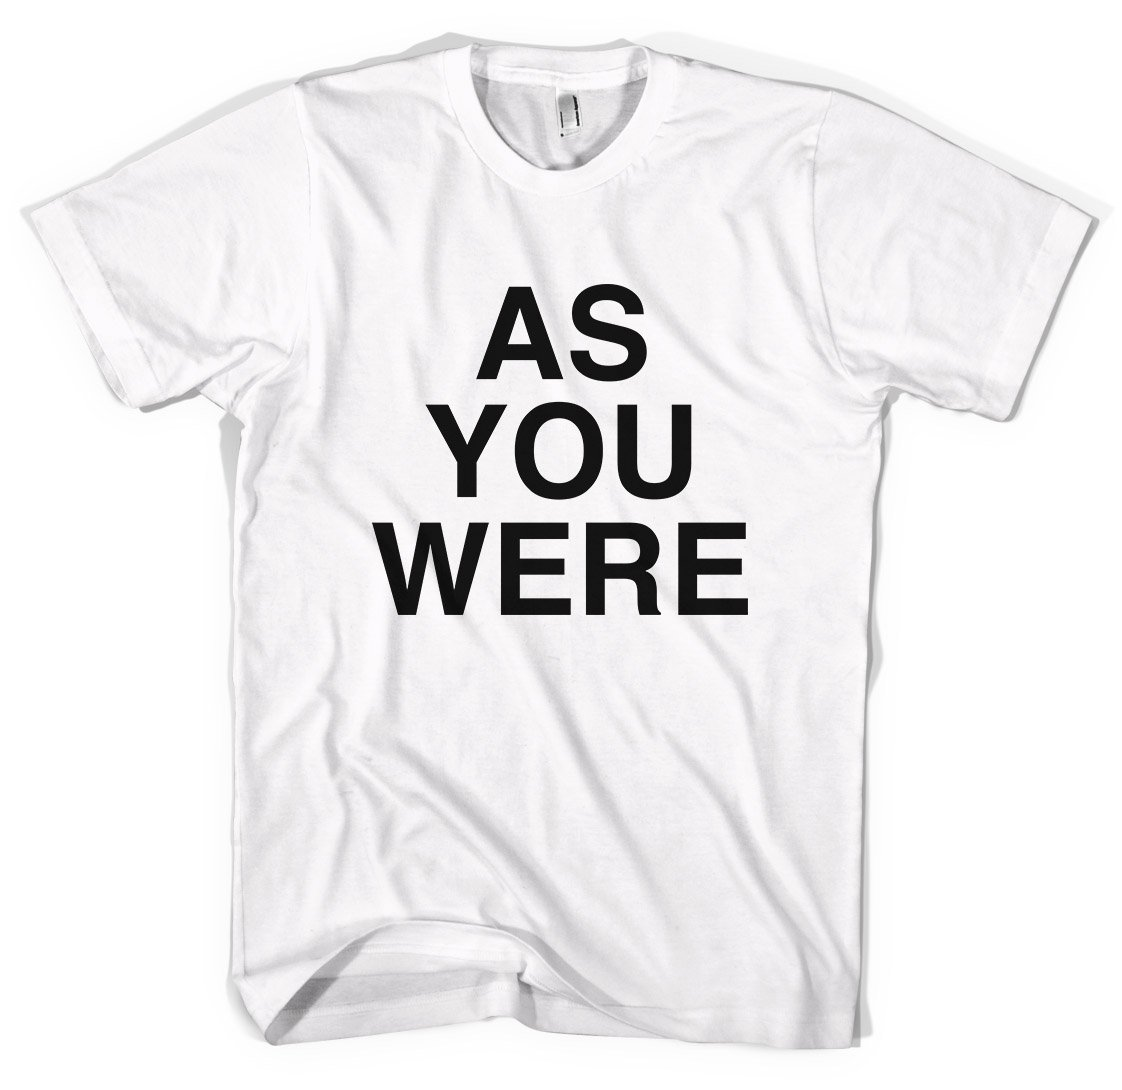 As You Were Liam Gallagher Oasis Unisex T Shirt